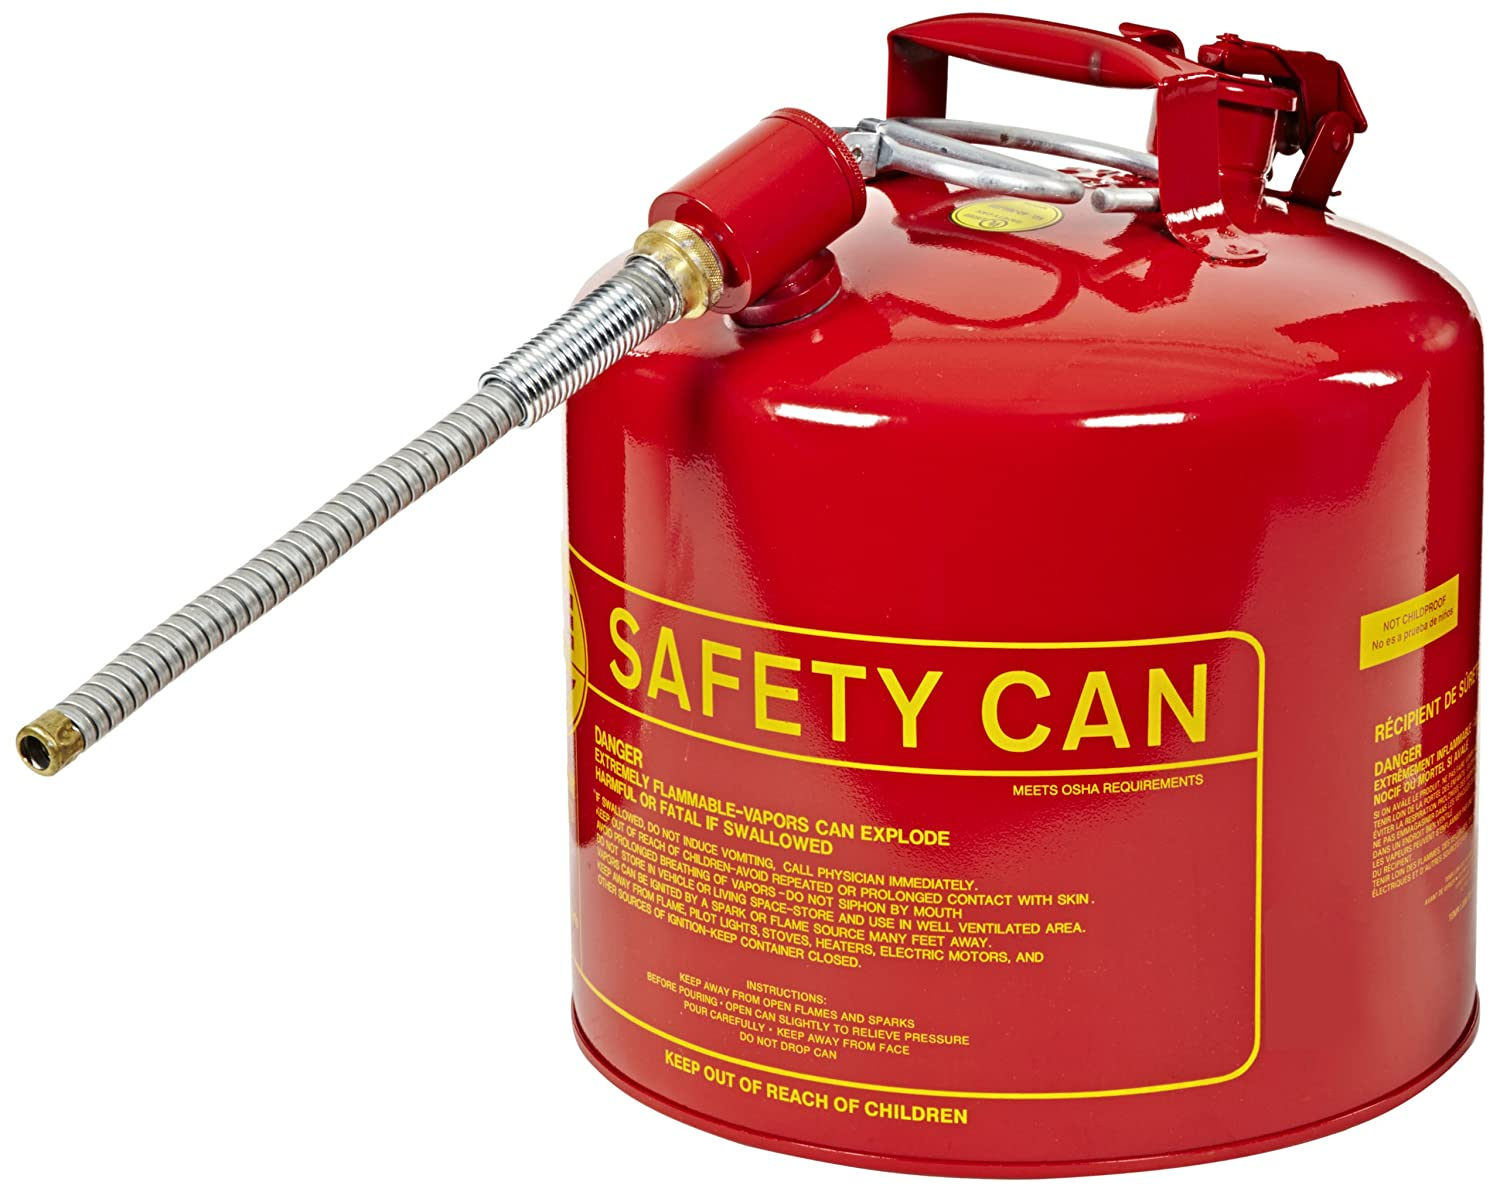 Eagle U2-51-SX5 Type II Metal Safety Can, Flammables, 11-1/4' Width x 15-7/8' Depth, 5 Gallon Capacity, 5/8' OD Pour Spout, Red 11-1/4 Width x 15-7/8 Depth 5/8 OD Pour Spout Eagle Manufacturing